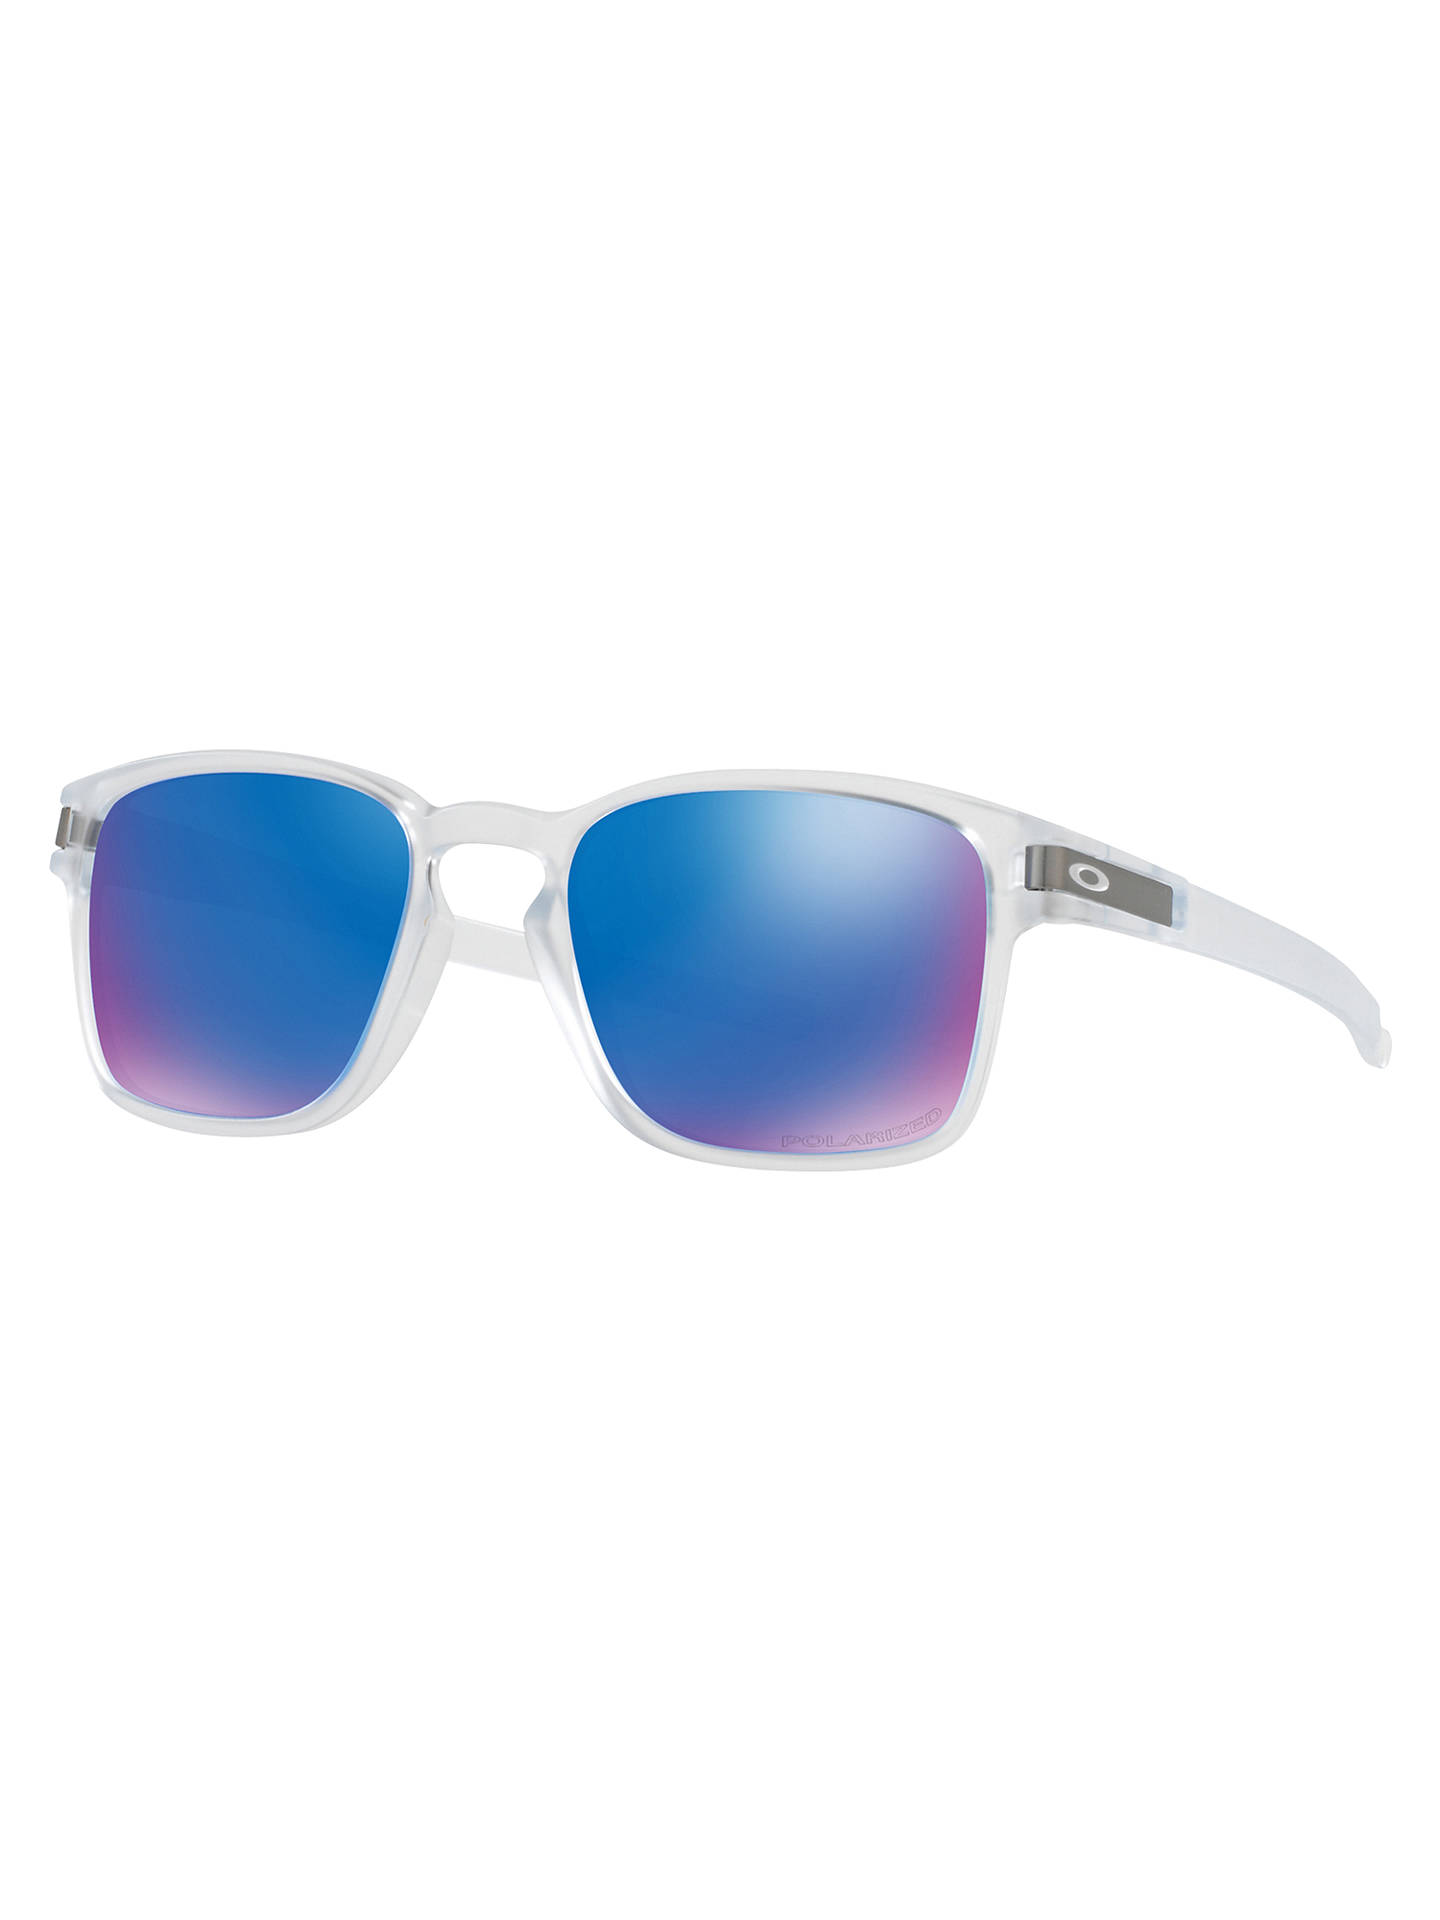 670d0ce3fe Oakley OO9353 Latch SQ Polarised Square Sunglasses at John Lewis ...